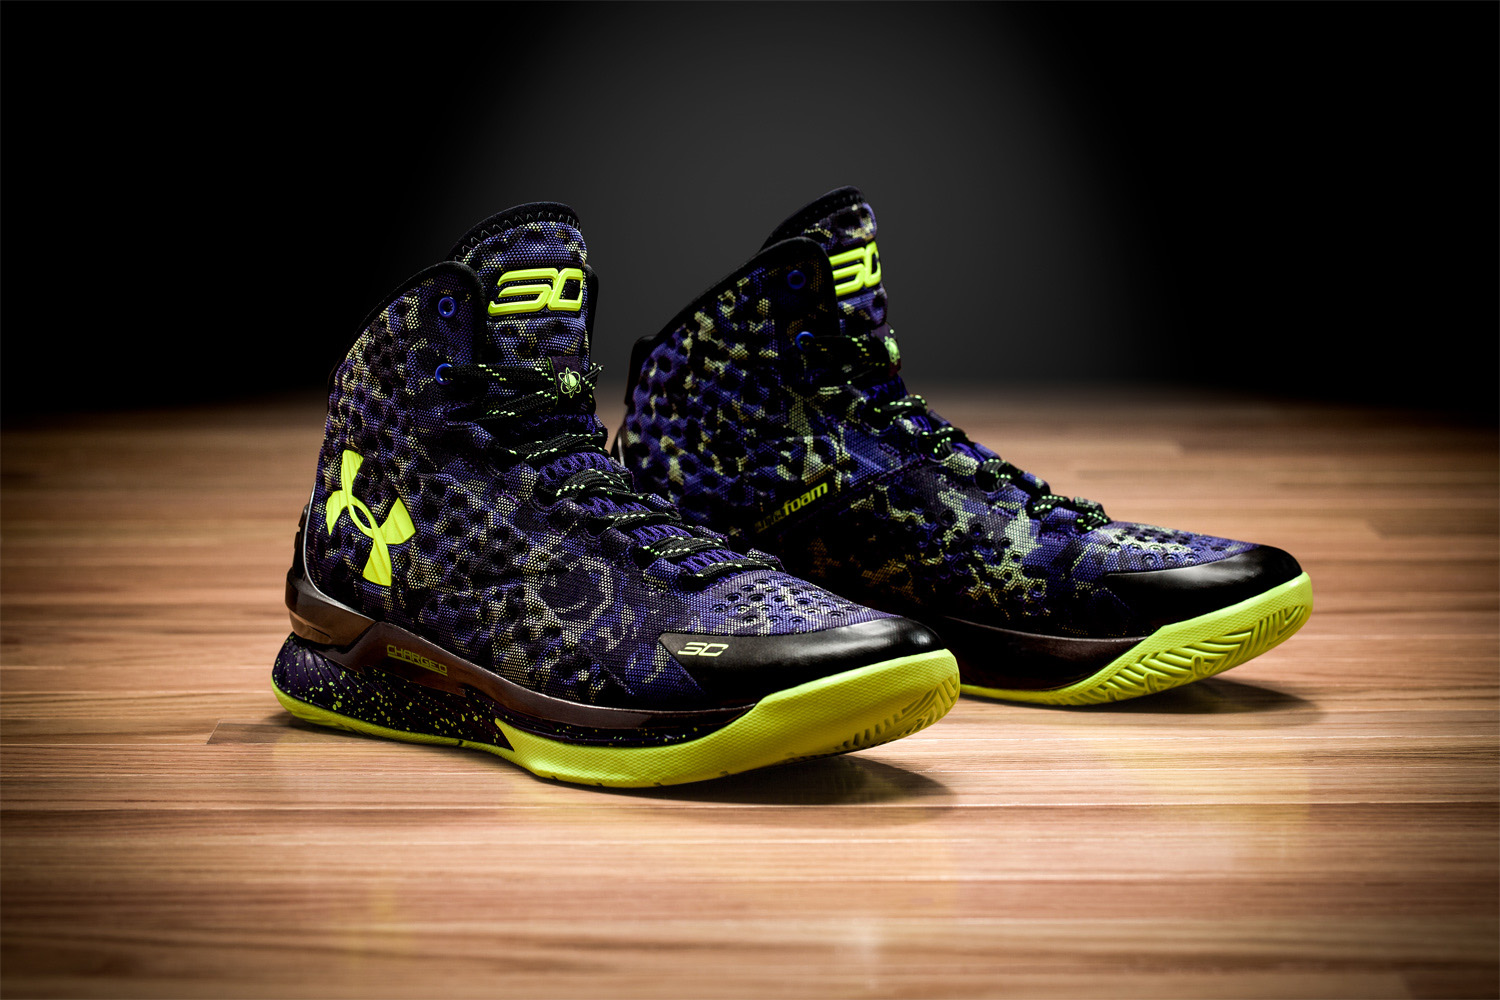 2015 02 01 Ua Star Colorway Steph Curry Dark Matter Curry One Cheap